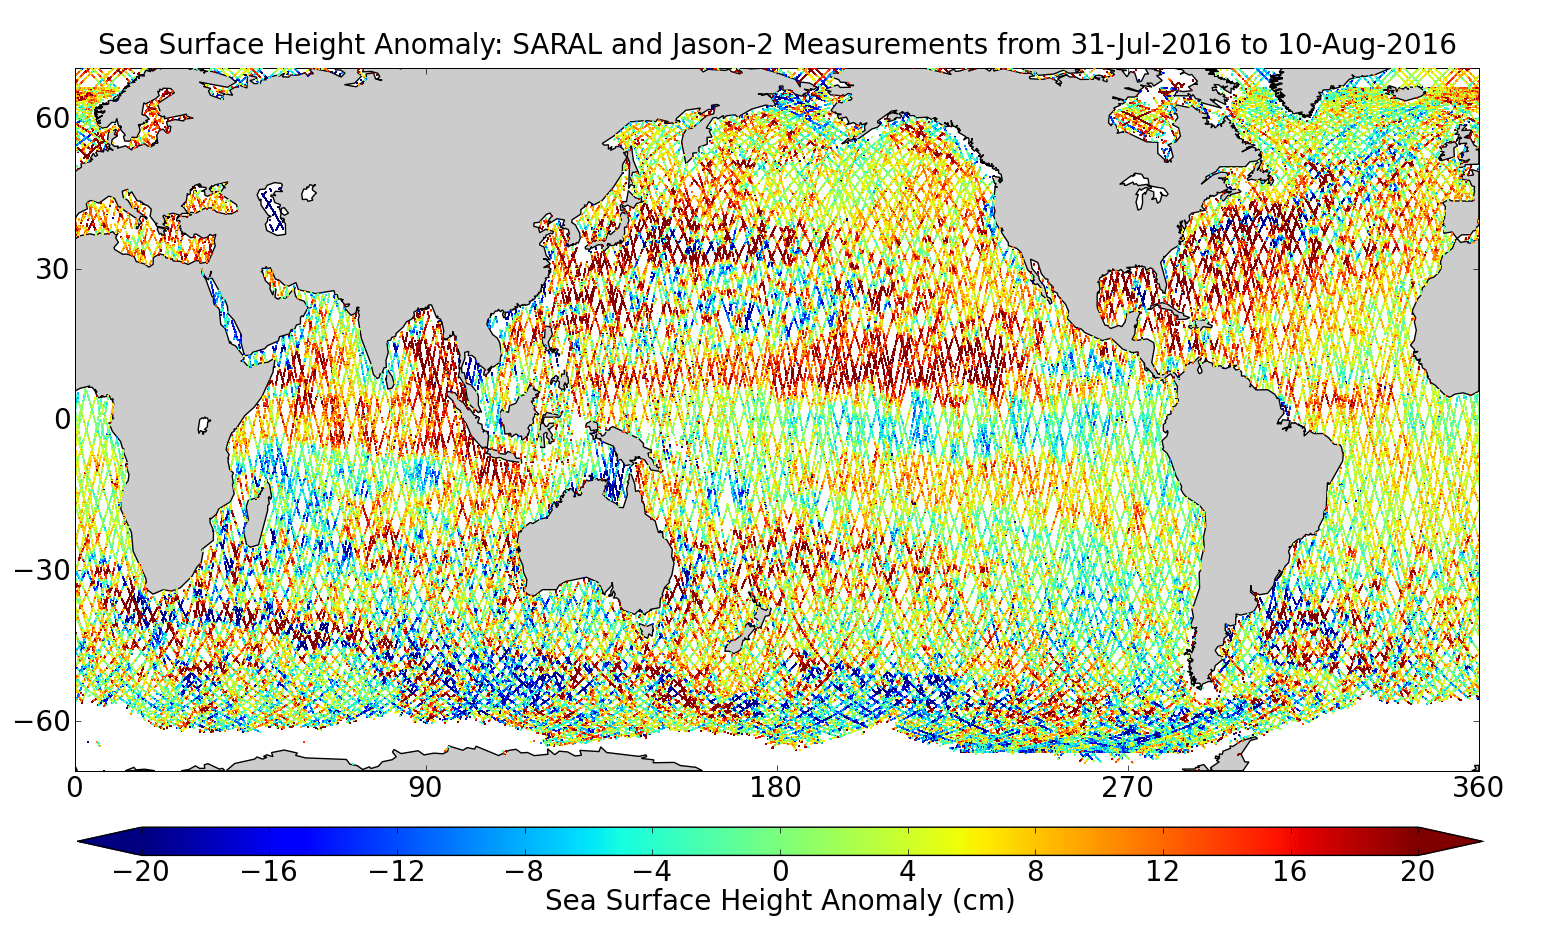 Sea Surface Height Anomaly: SARAL and Jason-2 Measurements from 31-Jul-2016 to 10-Aug-2016